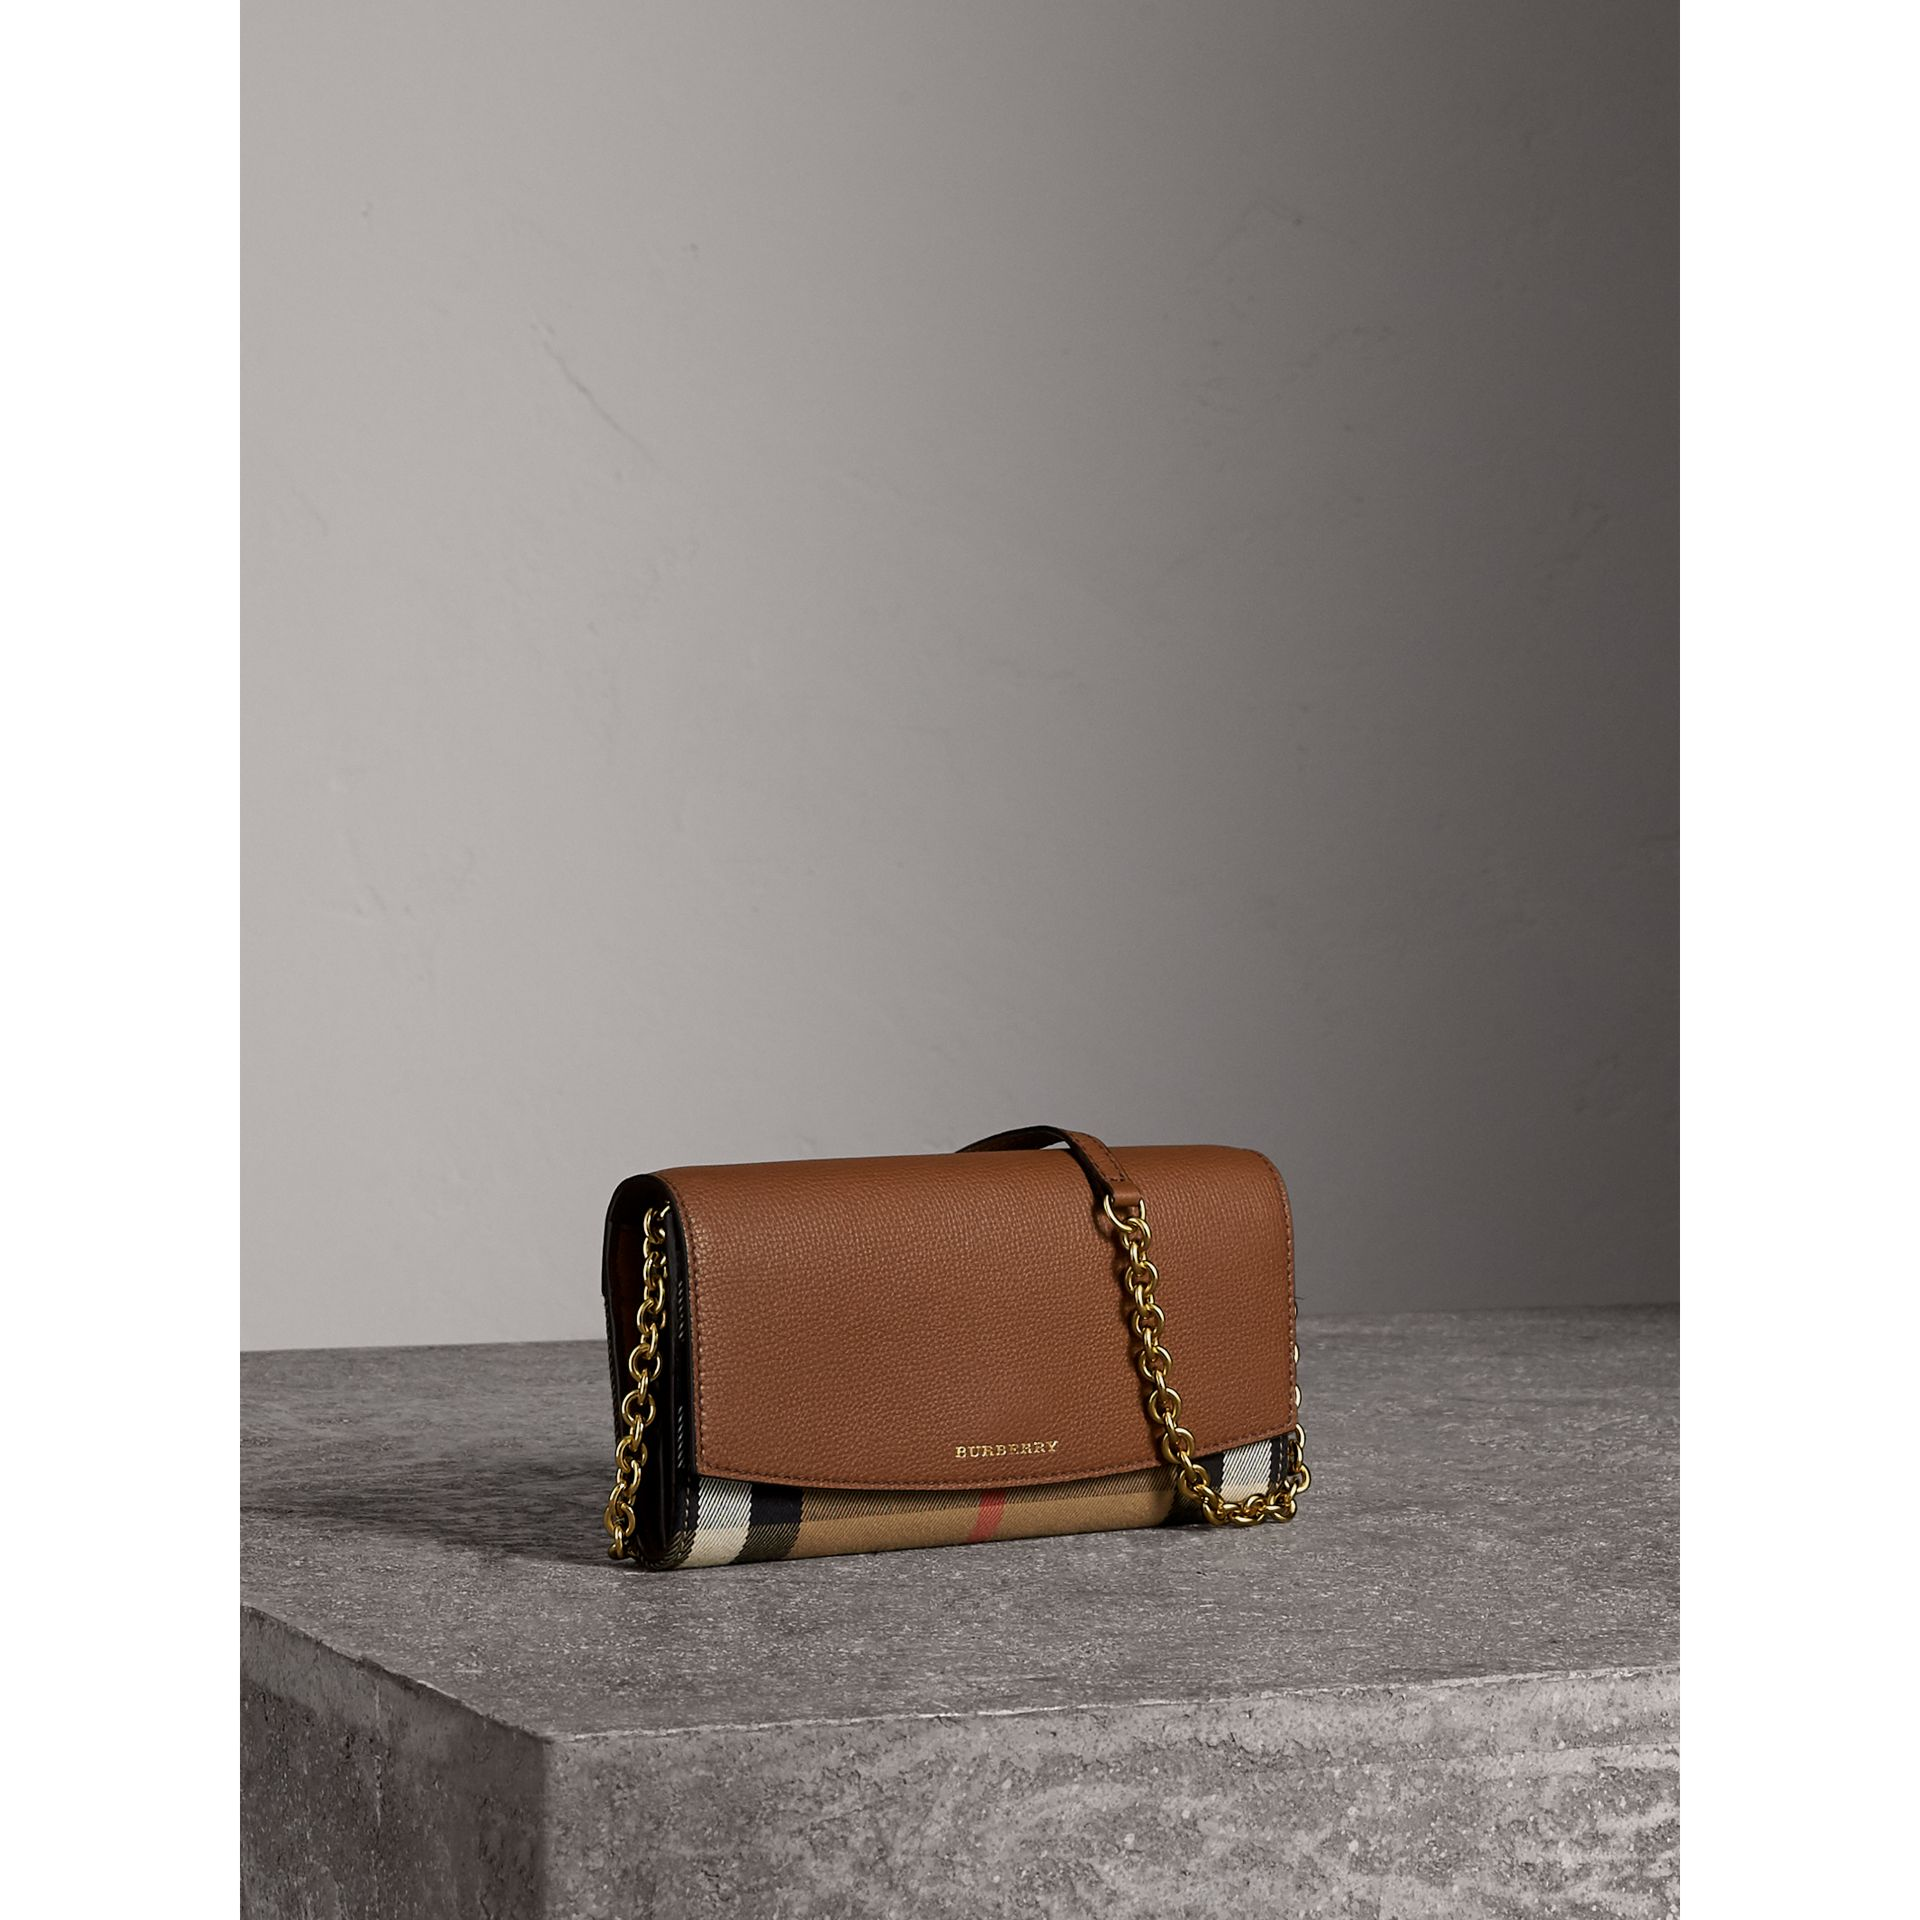 House Check and Leather Wallet with Chain in Tan - Women | Burberry Australia - gallery image 6